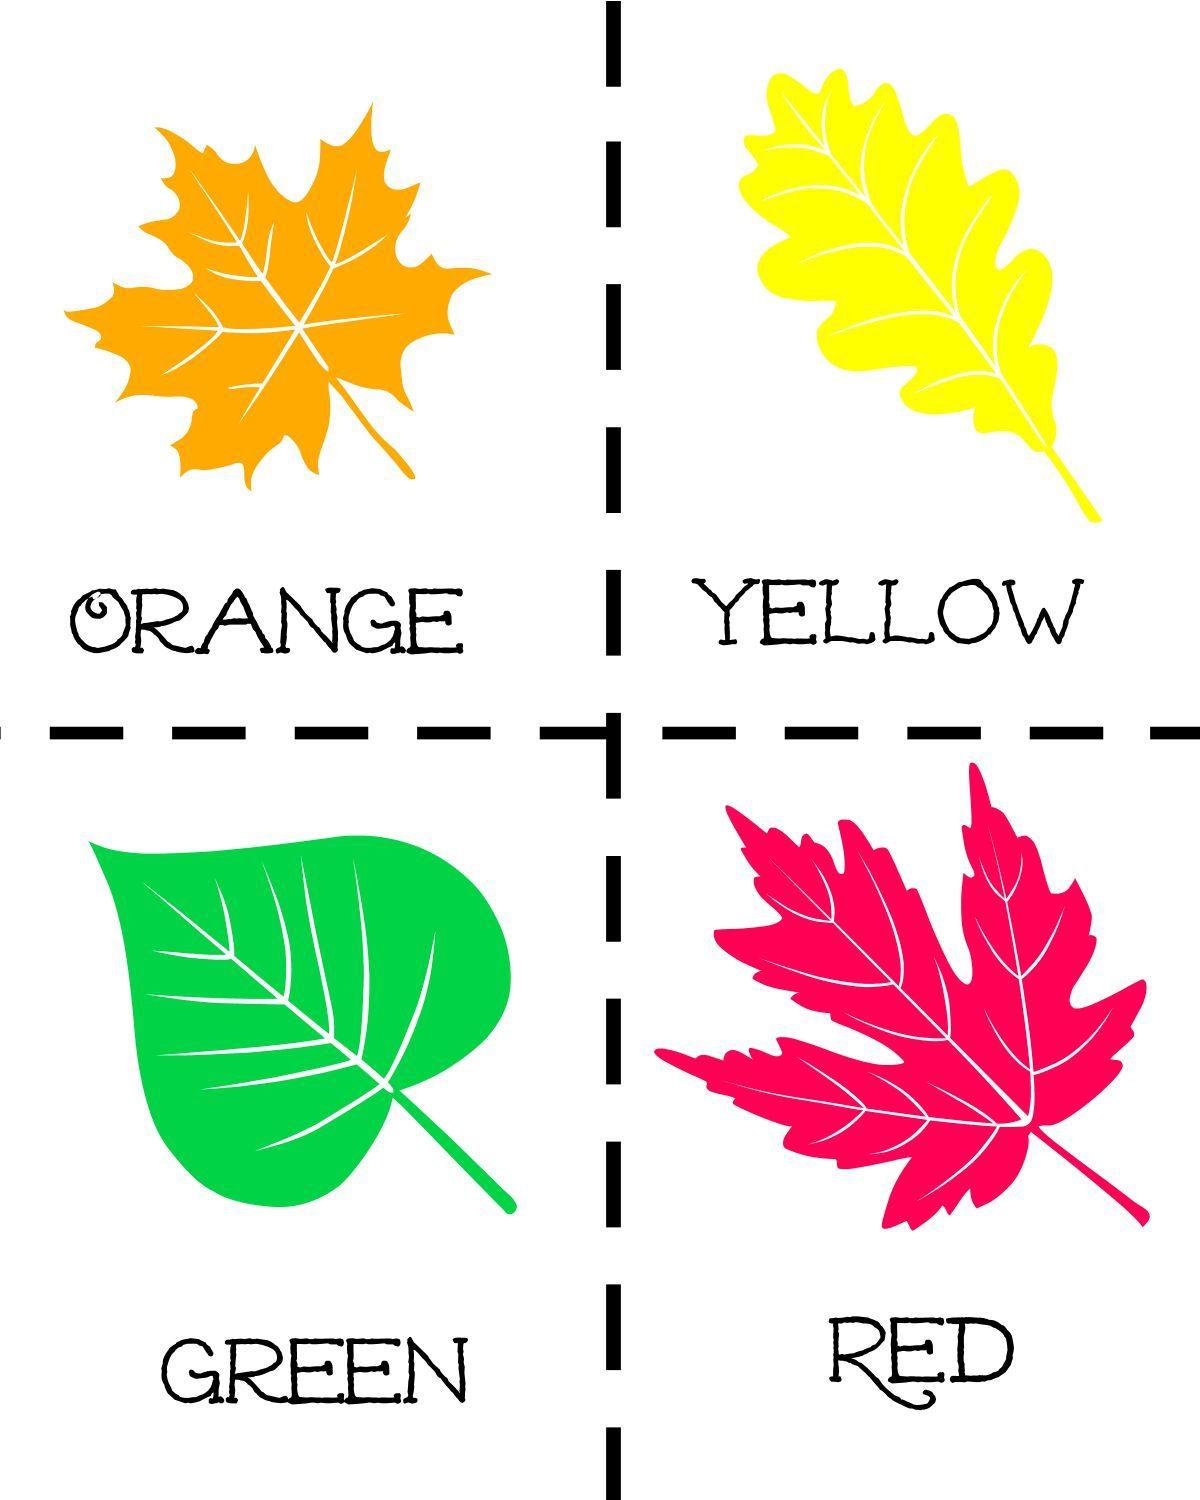 Fall Leaf Scavenger Hunt Activity With Free Printable Worksheet Fall Preschool Activities Leaf Lesson Plans Fall Lesson Plans [ 1500 x 1200 Pixel ]